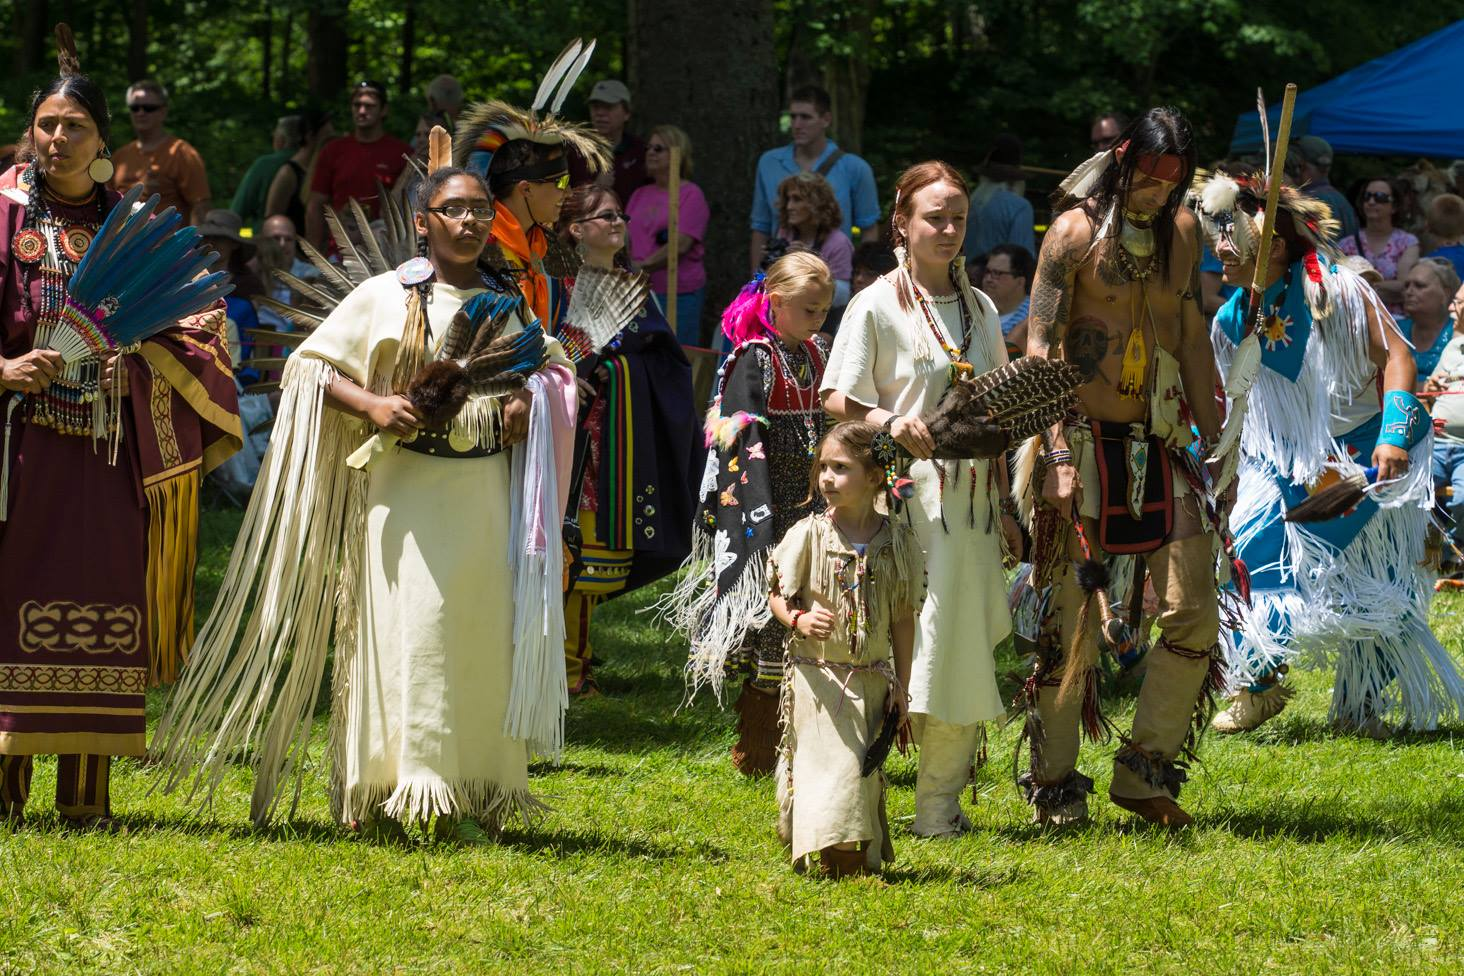 Mary Annette Pember: Shawnee tribes question 'hobby' Indians